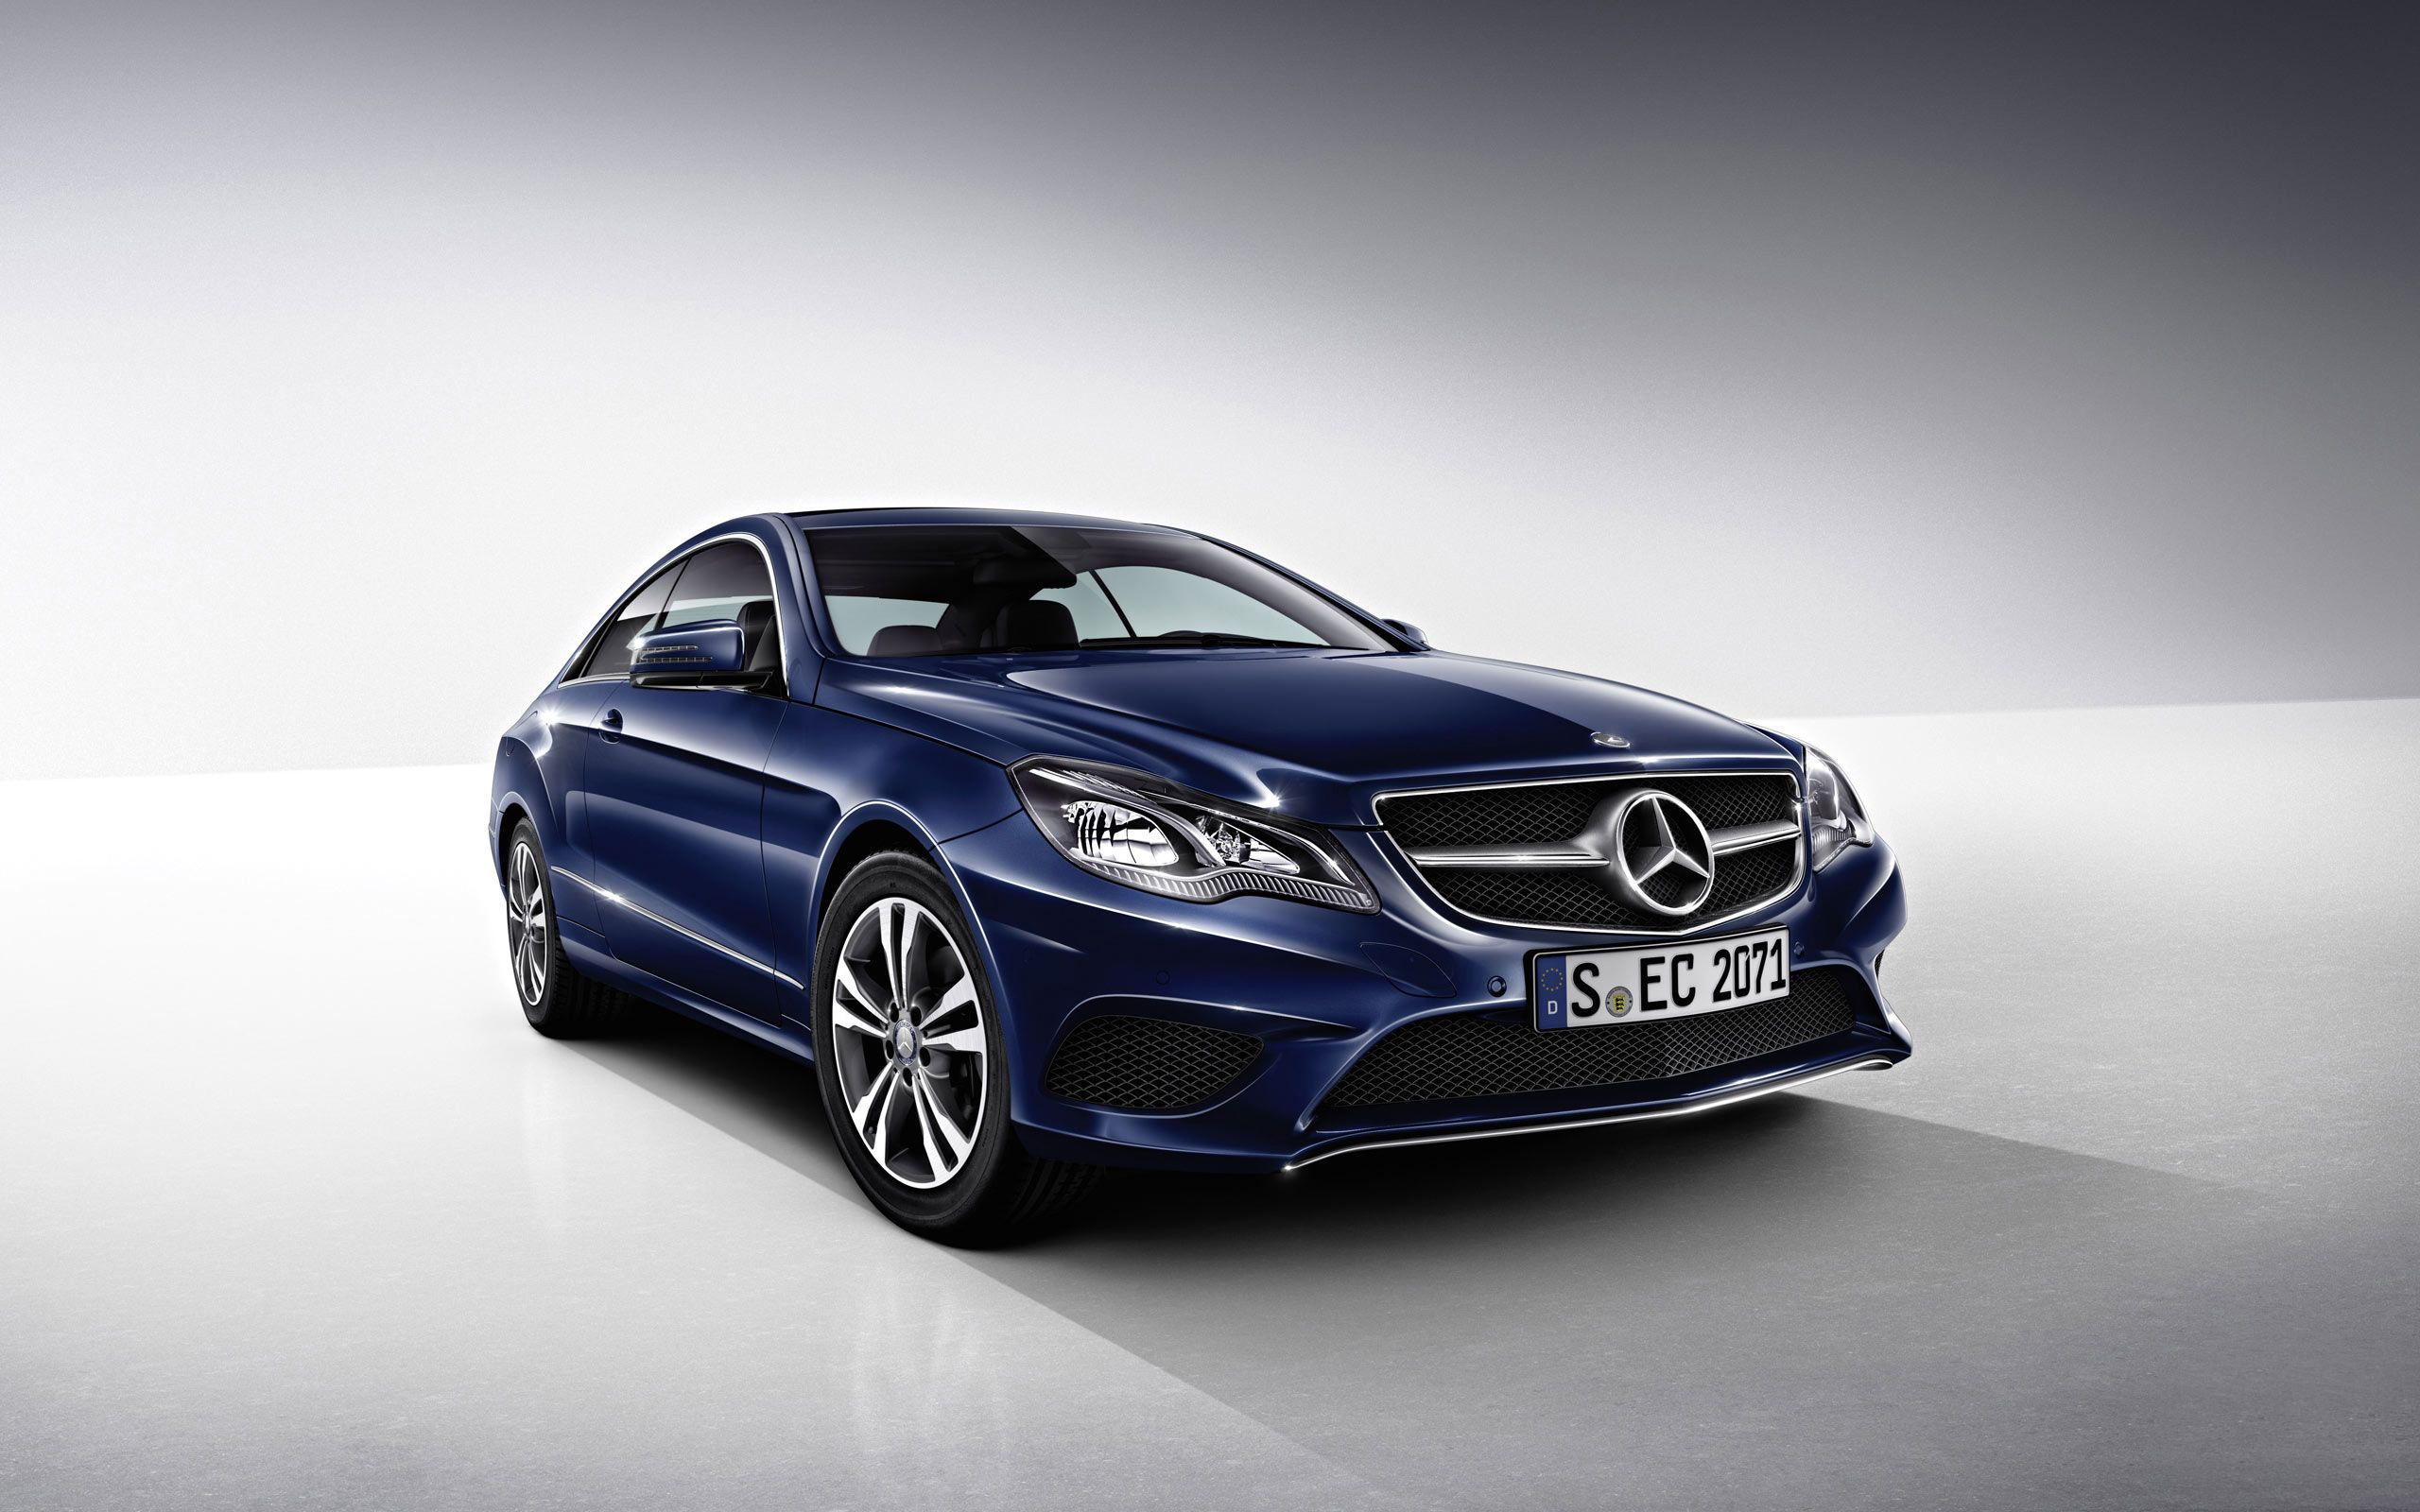 direct a definition chicago sport mercedes cars in benz sedan presents youtube high watch